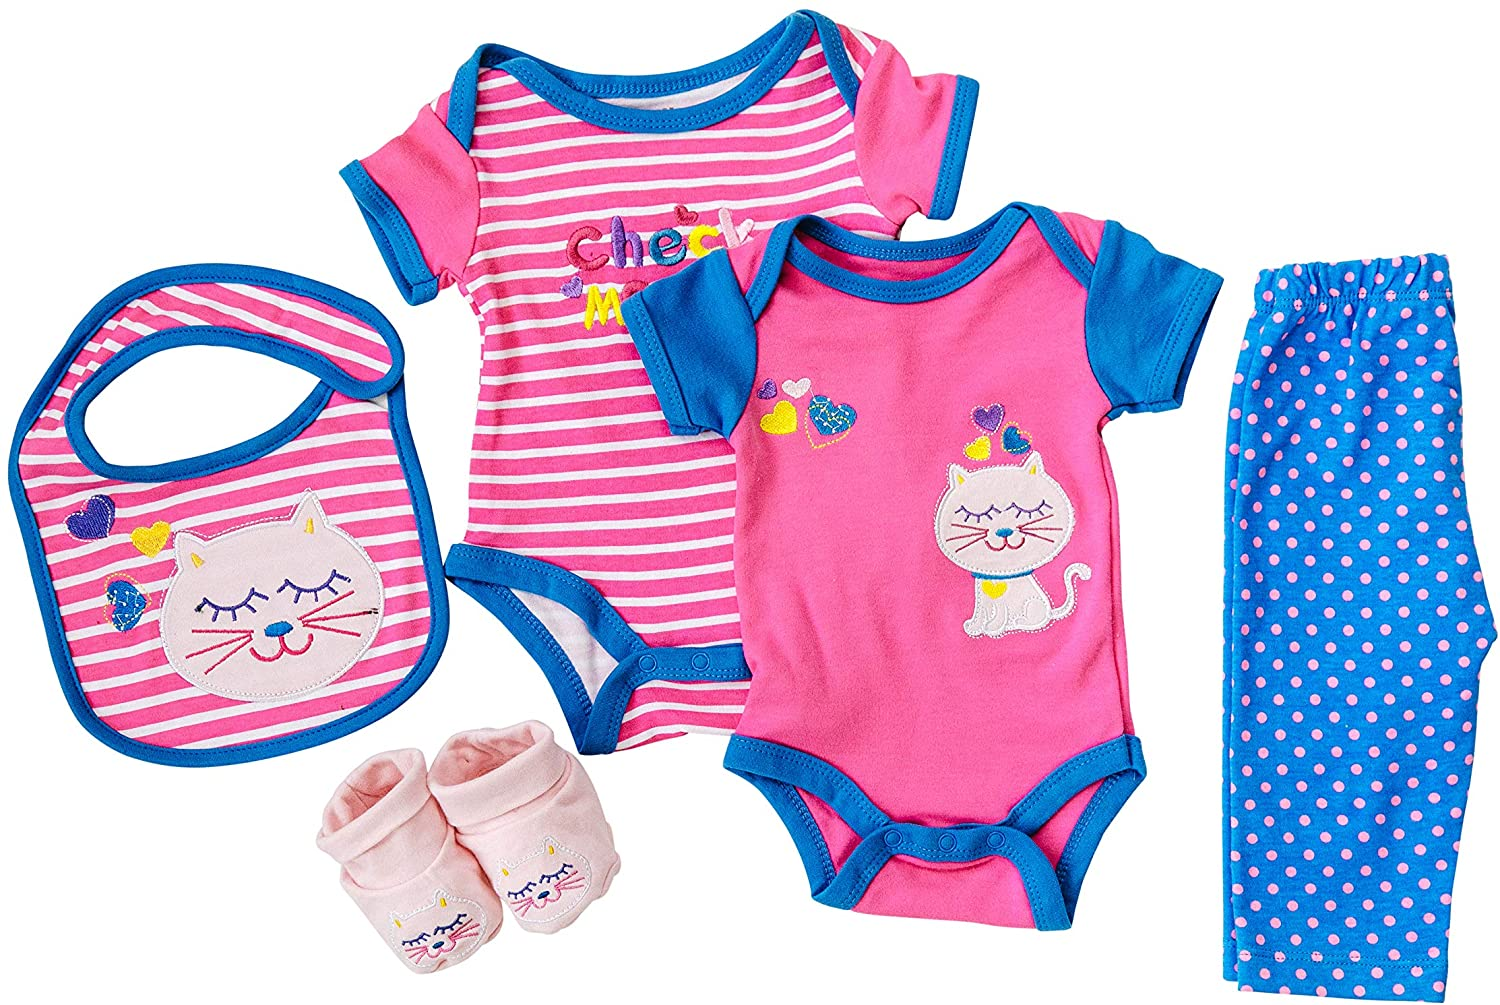 5 Piece Baby Clothes Set, Check Meowt Set, 2 Onsies, One Set of Pants, One Bib, and One Set of Booties, 100% Cotton